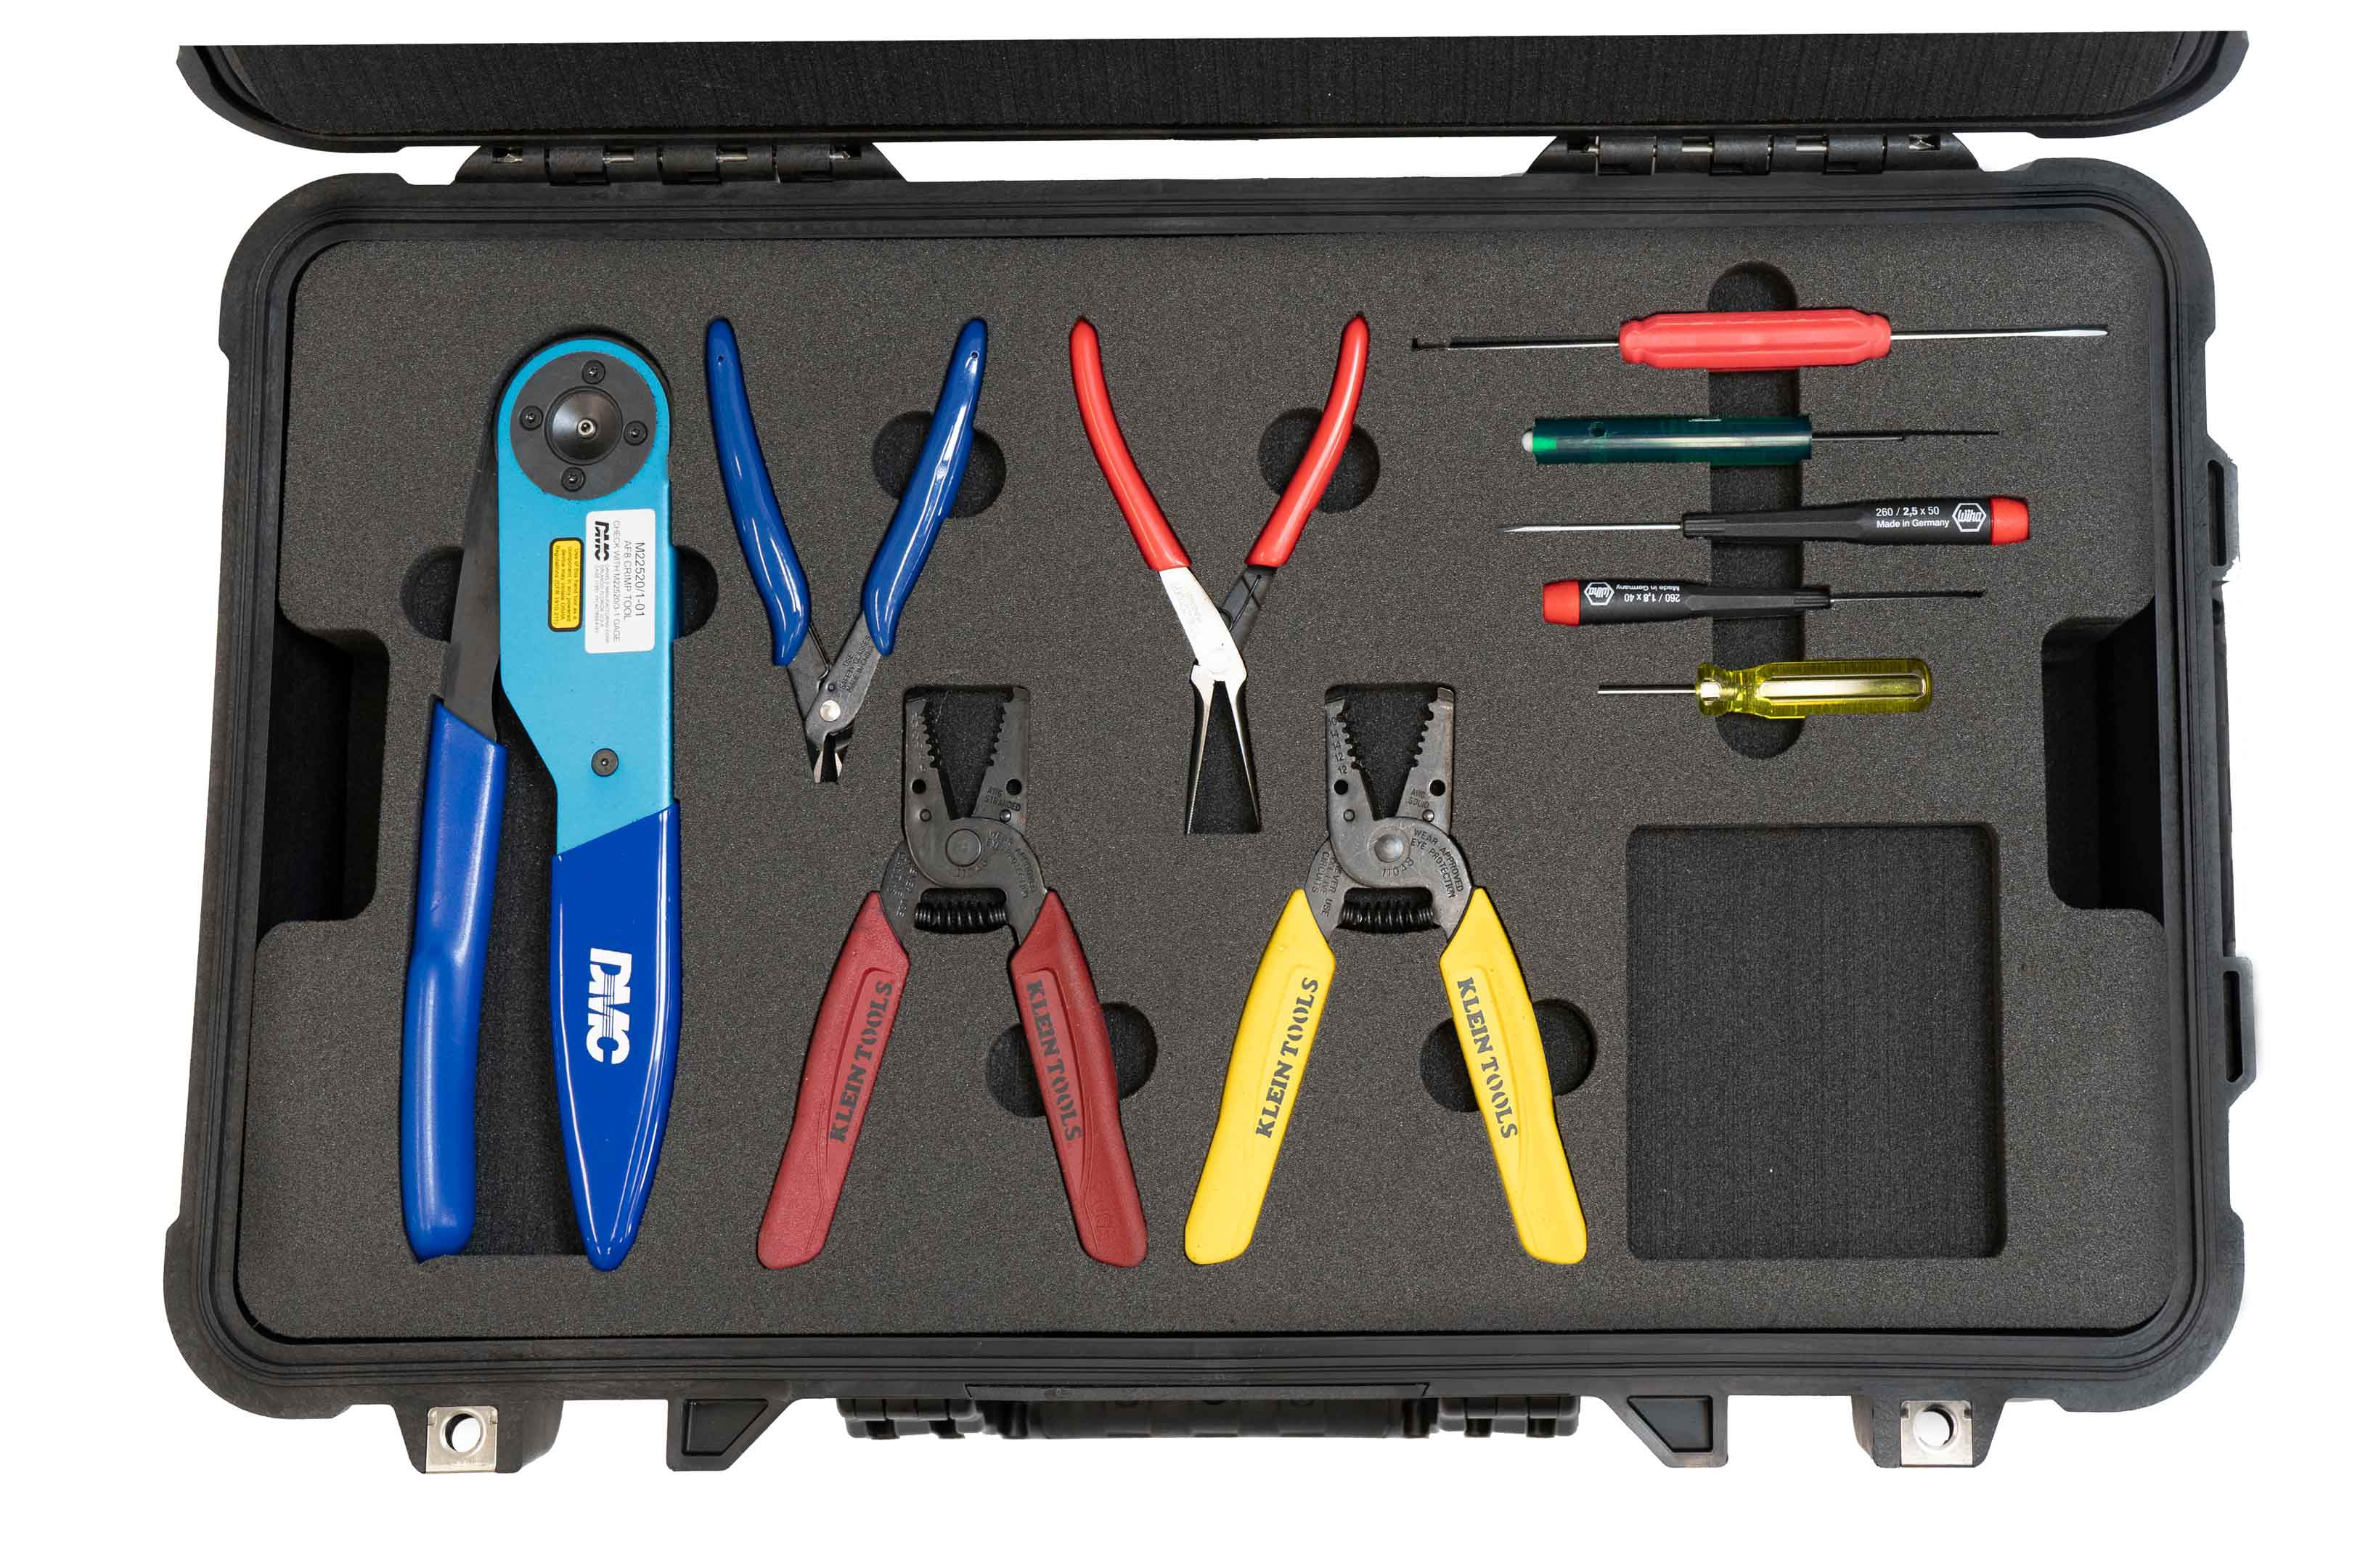 Tools For Wiring - Wiring Diagram 500 on torque tools, framing tools, foundation tools, networking tools, insulation tools, programming tools, operation tools, three tools, pneumatic tools, power tools, precision tools, cutting tools, hand tools,